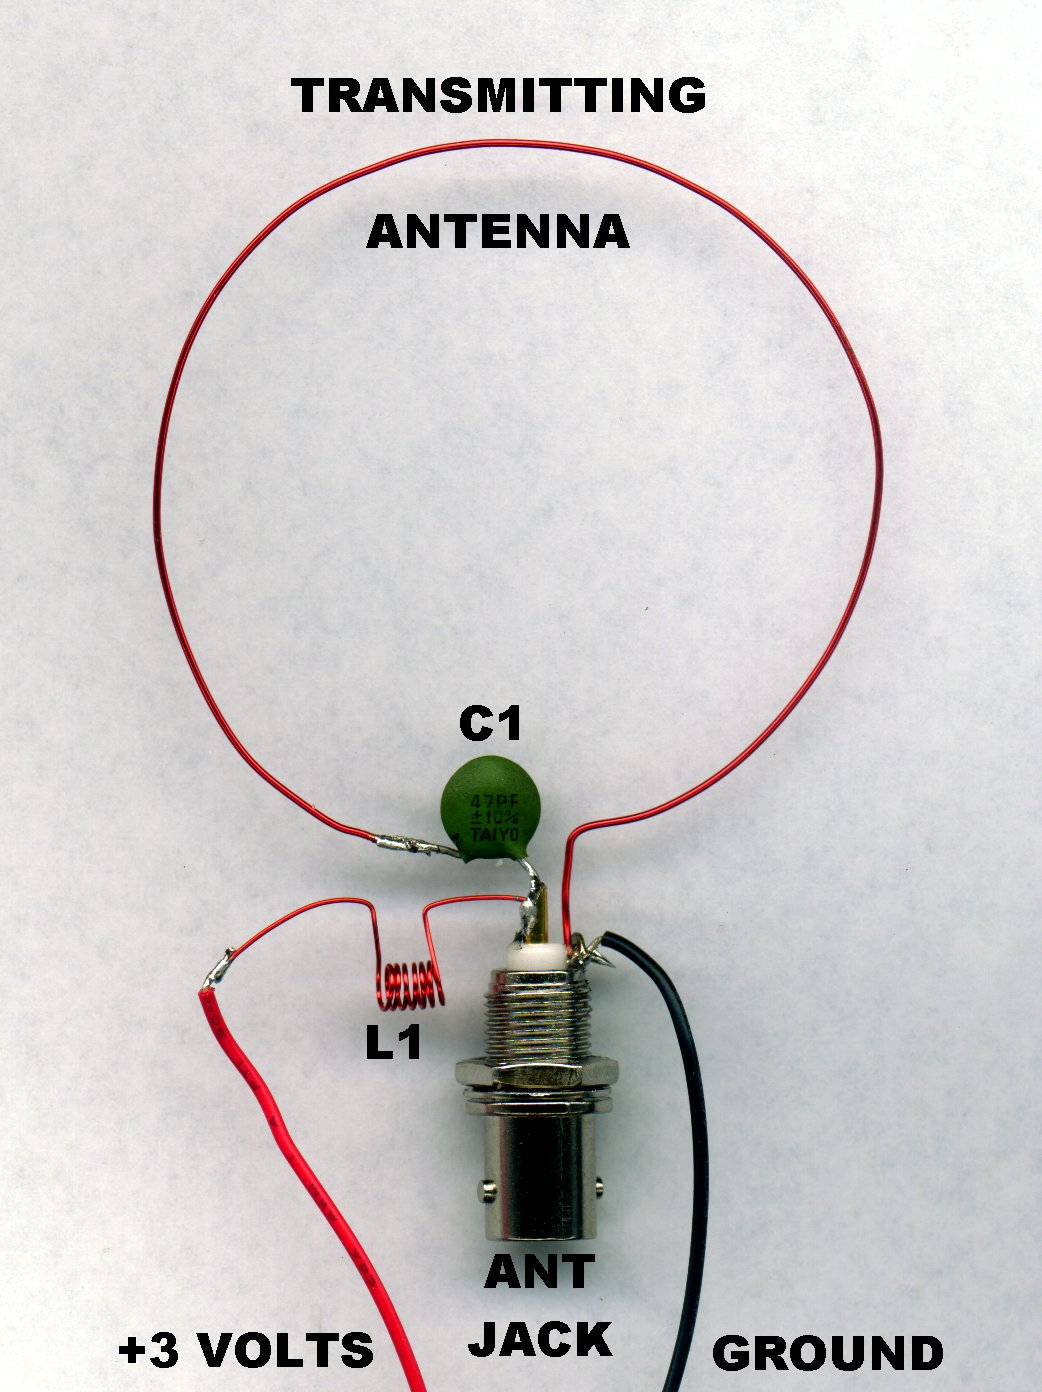 Channel Master Wiring Diagram as well Outdoor Digital Hd Antenna 25 Elements moreover Homemade Fm Antenna Design in addition Diagram Of An Antenna further 1447631. on tv antenna rotor wiring diagram